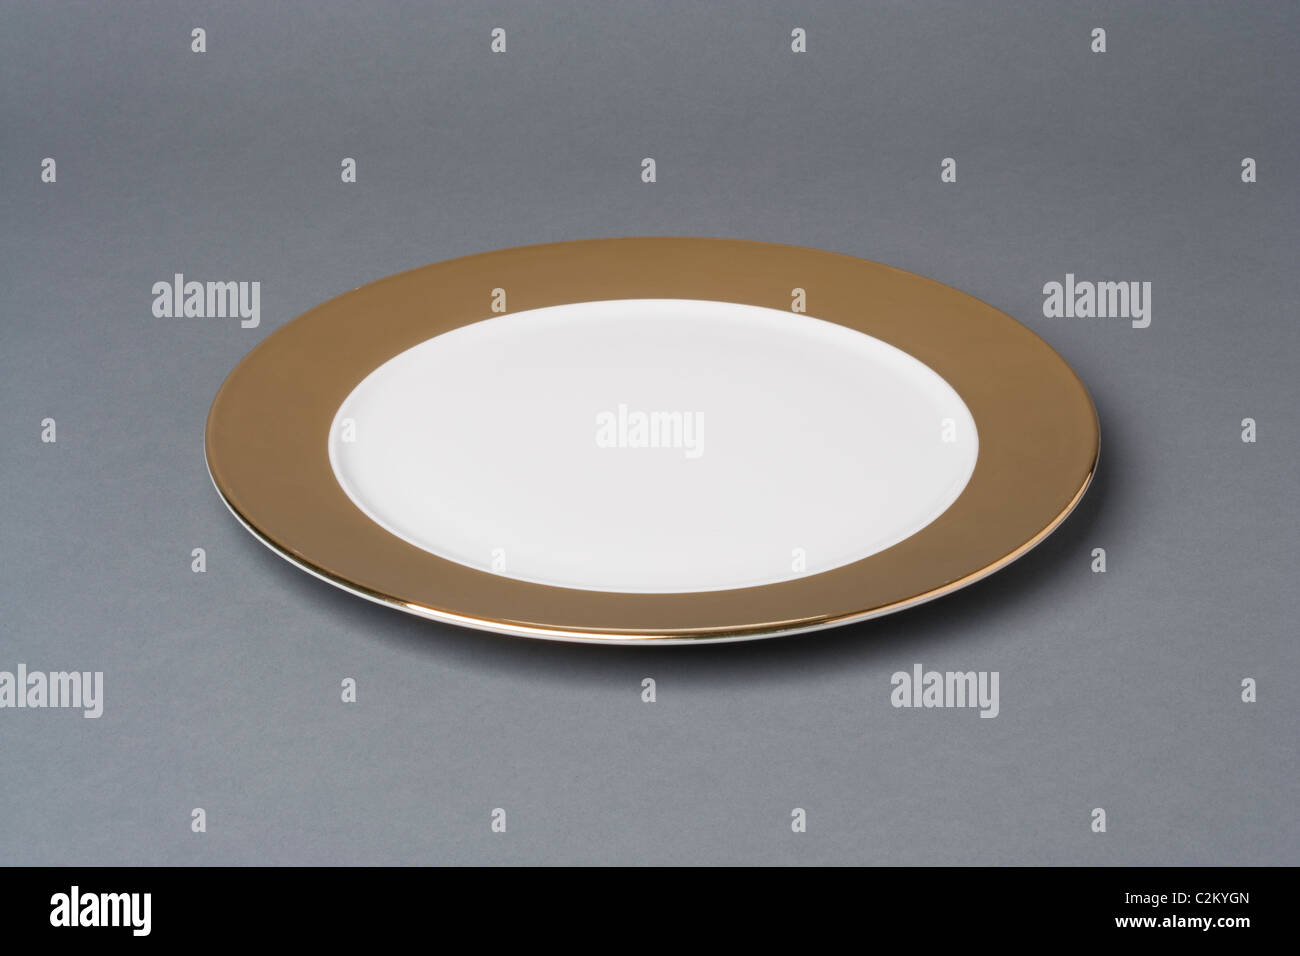 gold and white china crockery on a grey background - Stock Image